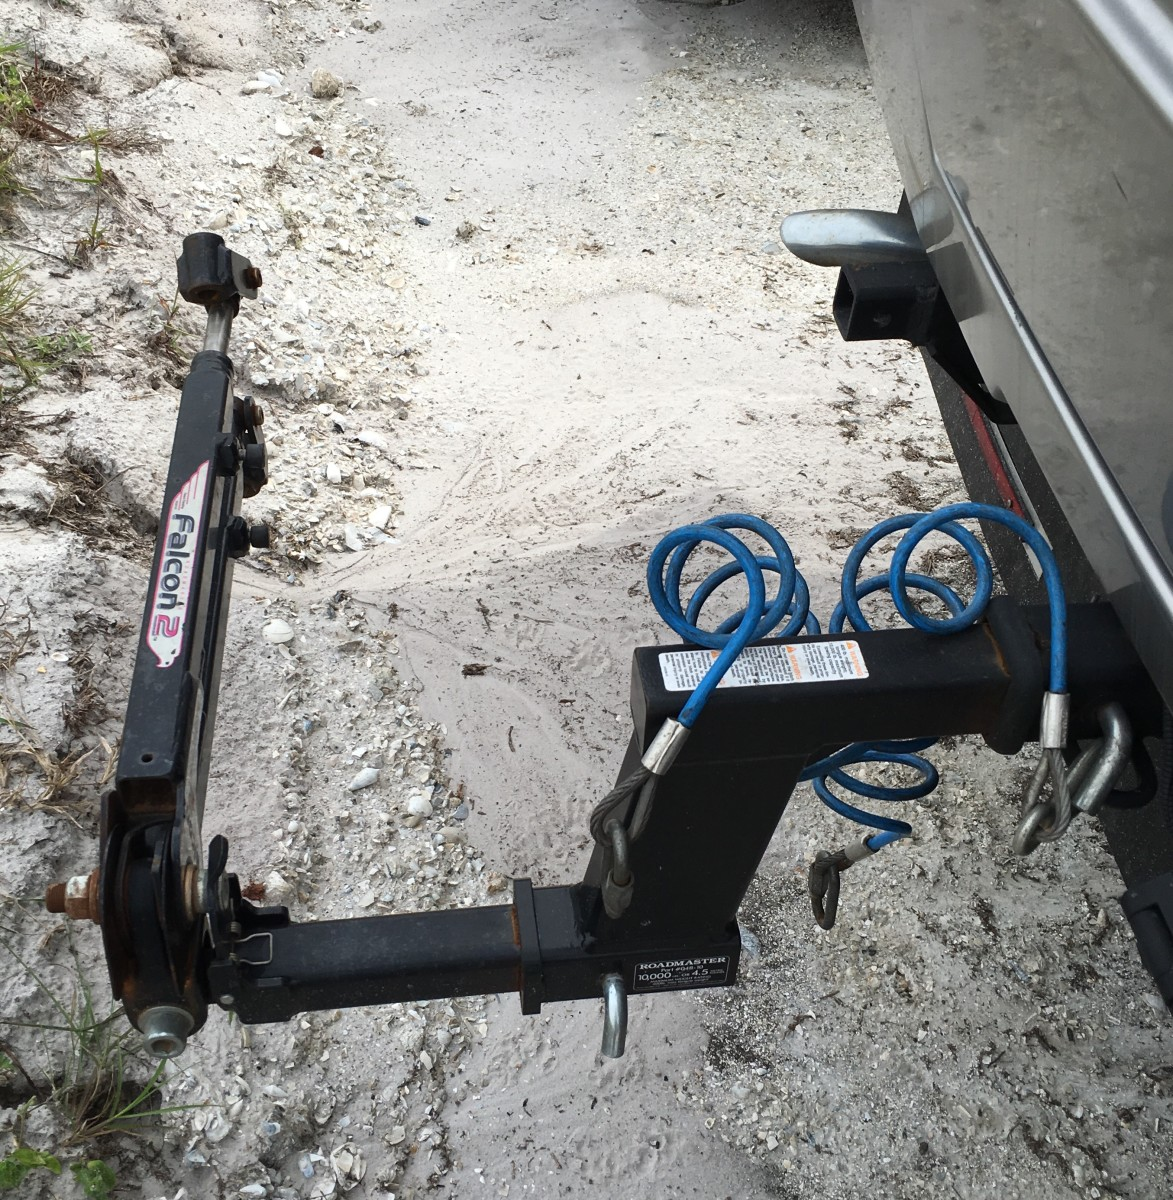 Towing Methods And Electrical Connections For An Rv A Car. Typical Tow Hitch For Rv's Towing A Vehicle 4down With All. Wiring. Motorhome Towing Systems Diagrams At Scoala.co